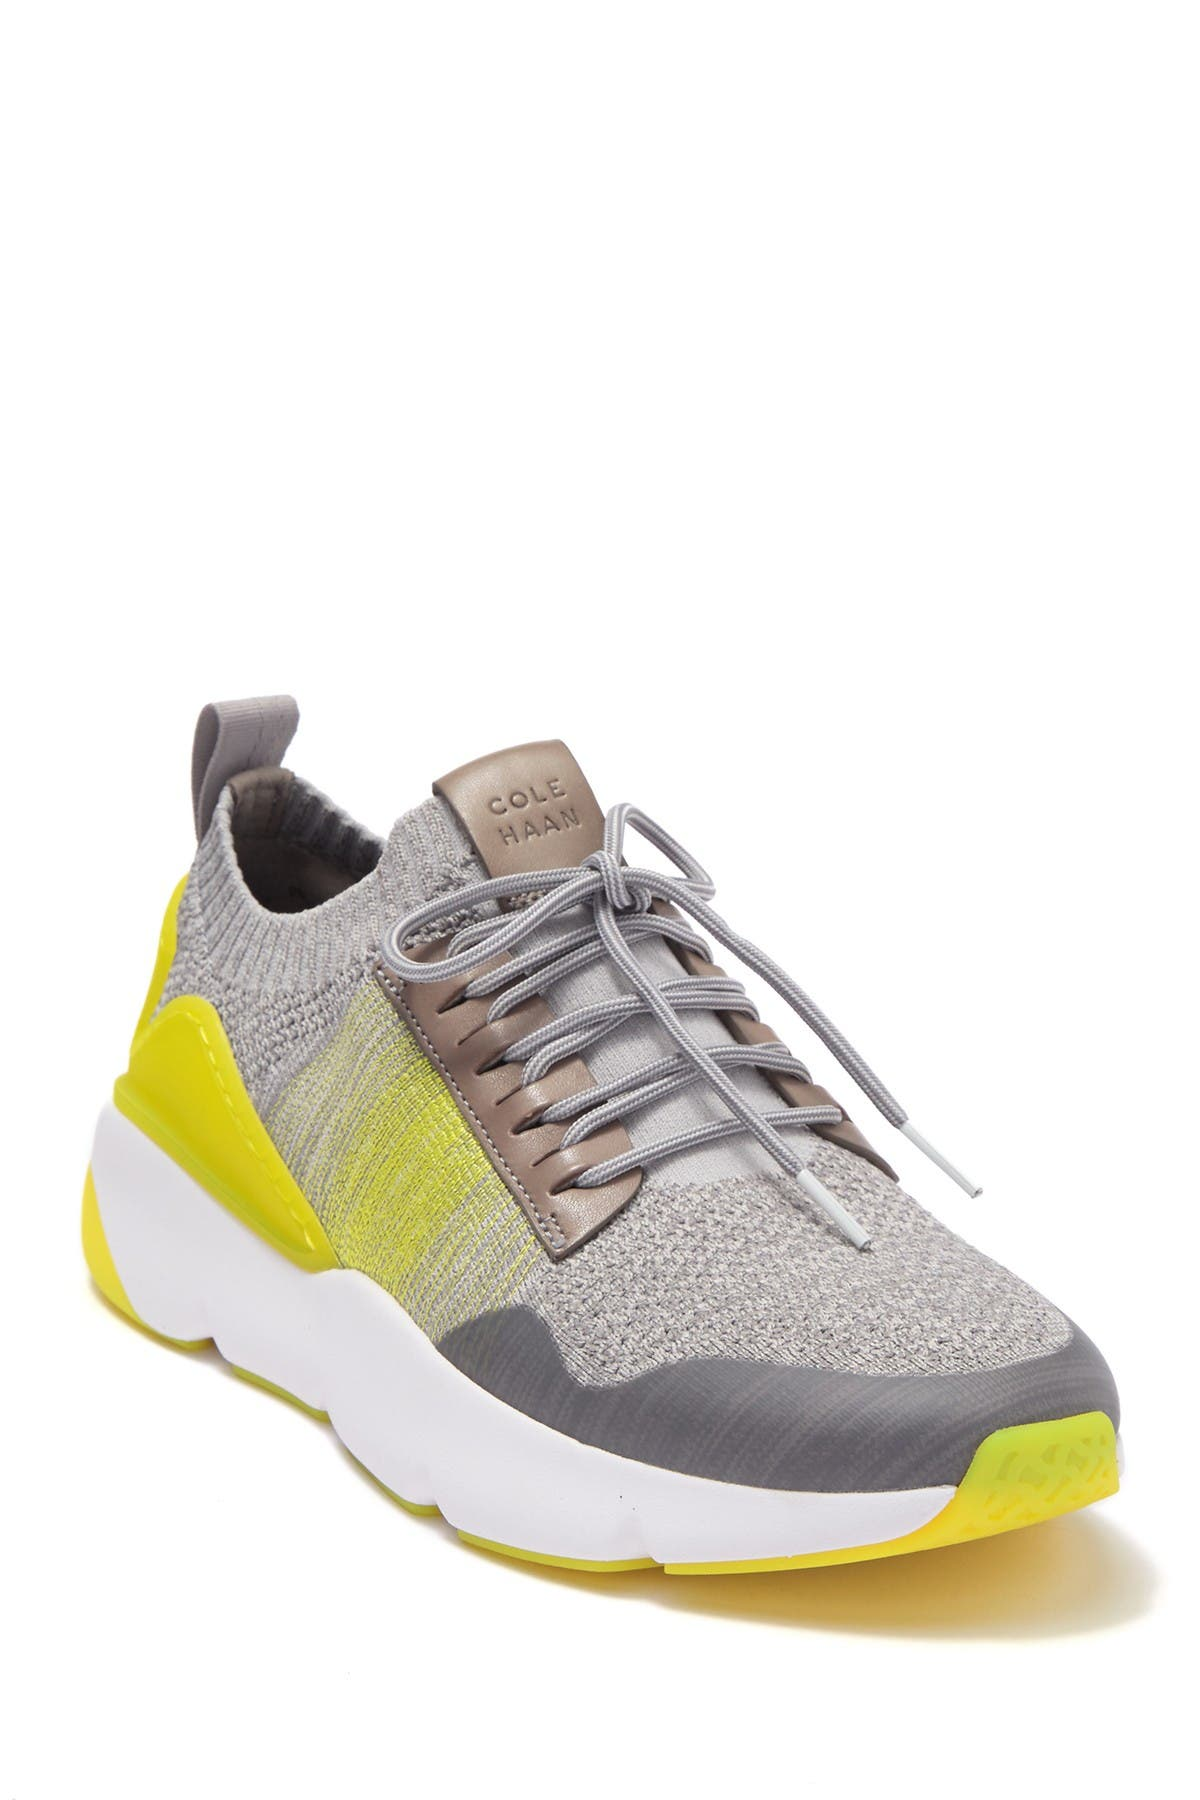 Cole Haan | Zerogrand All Day Trainer